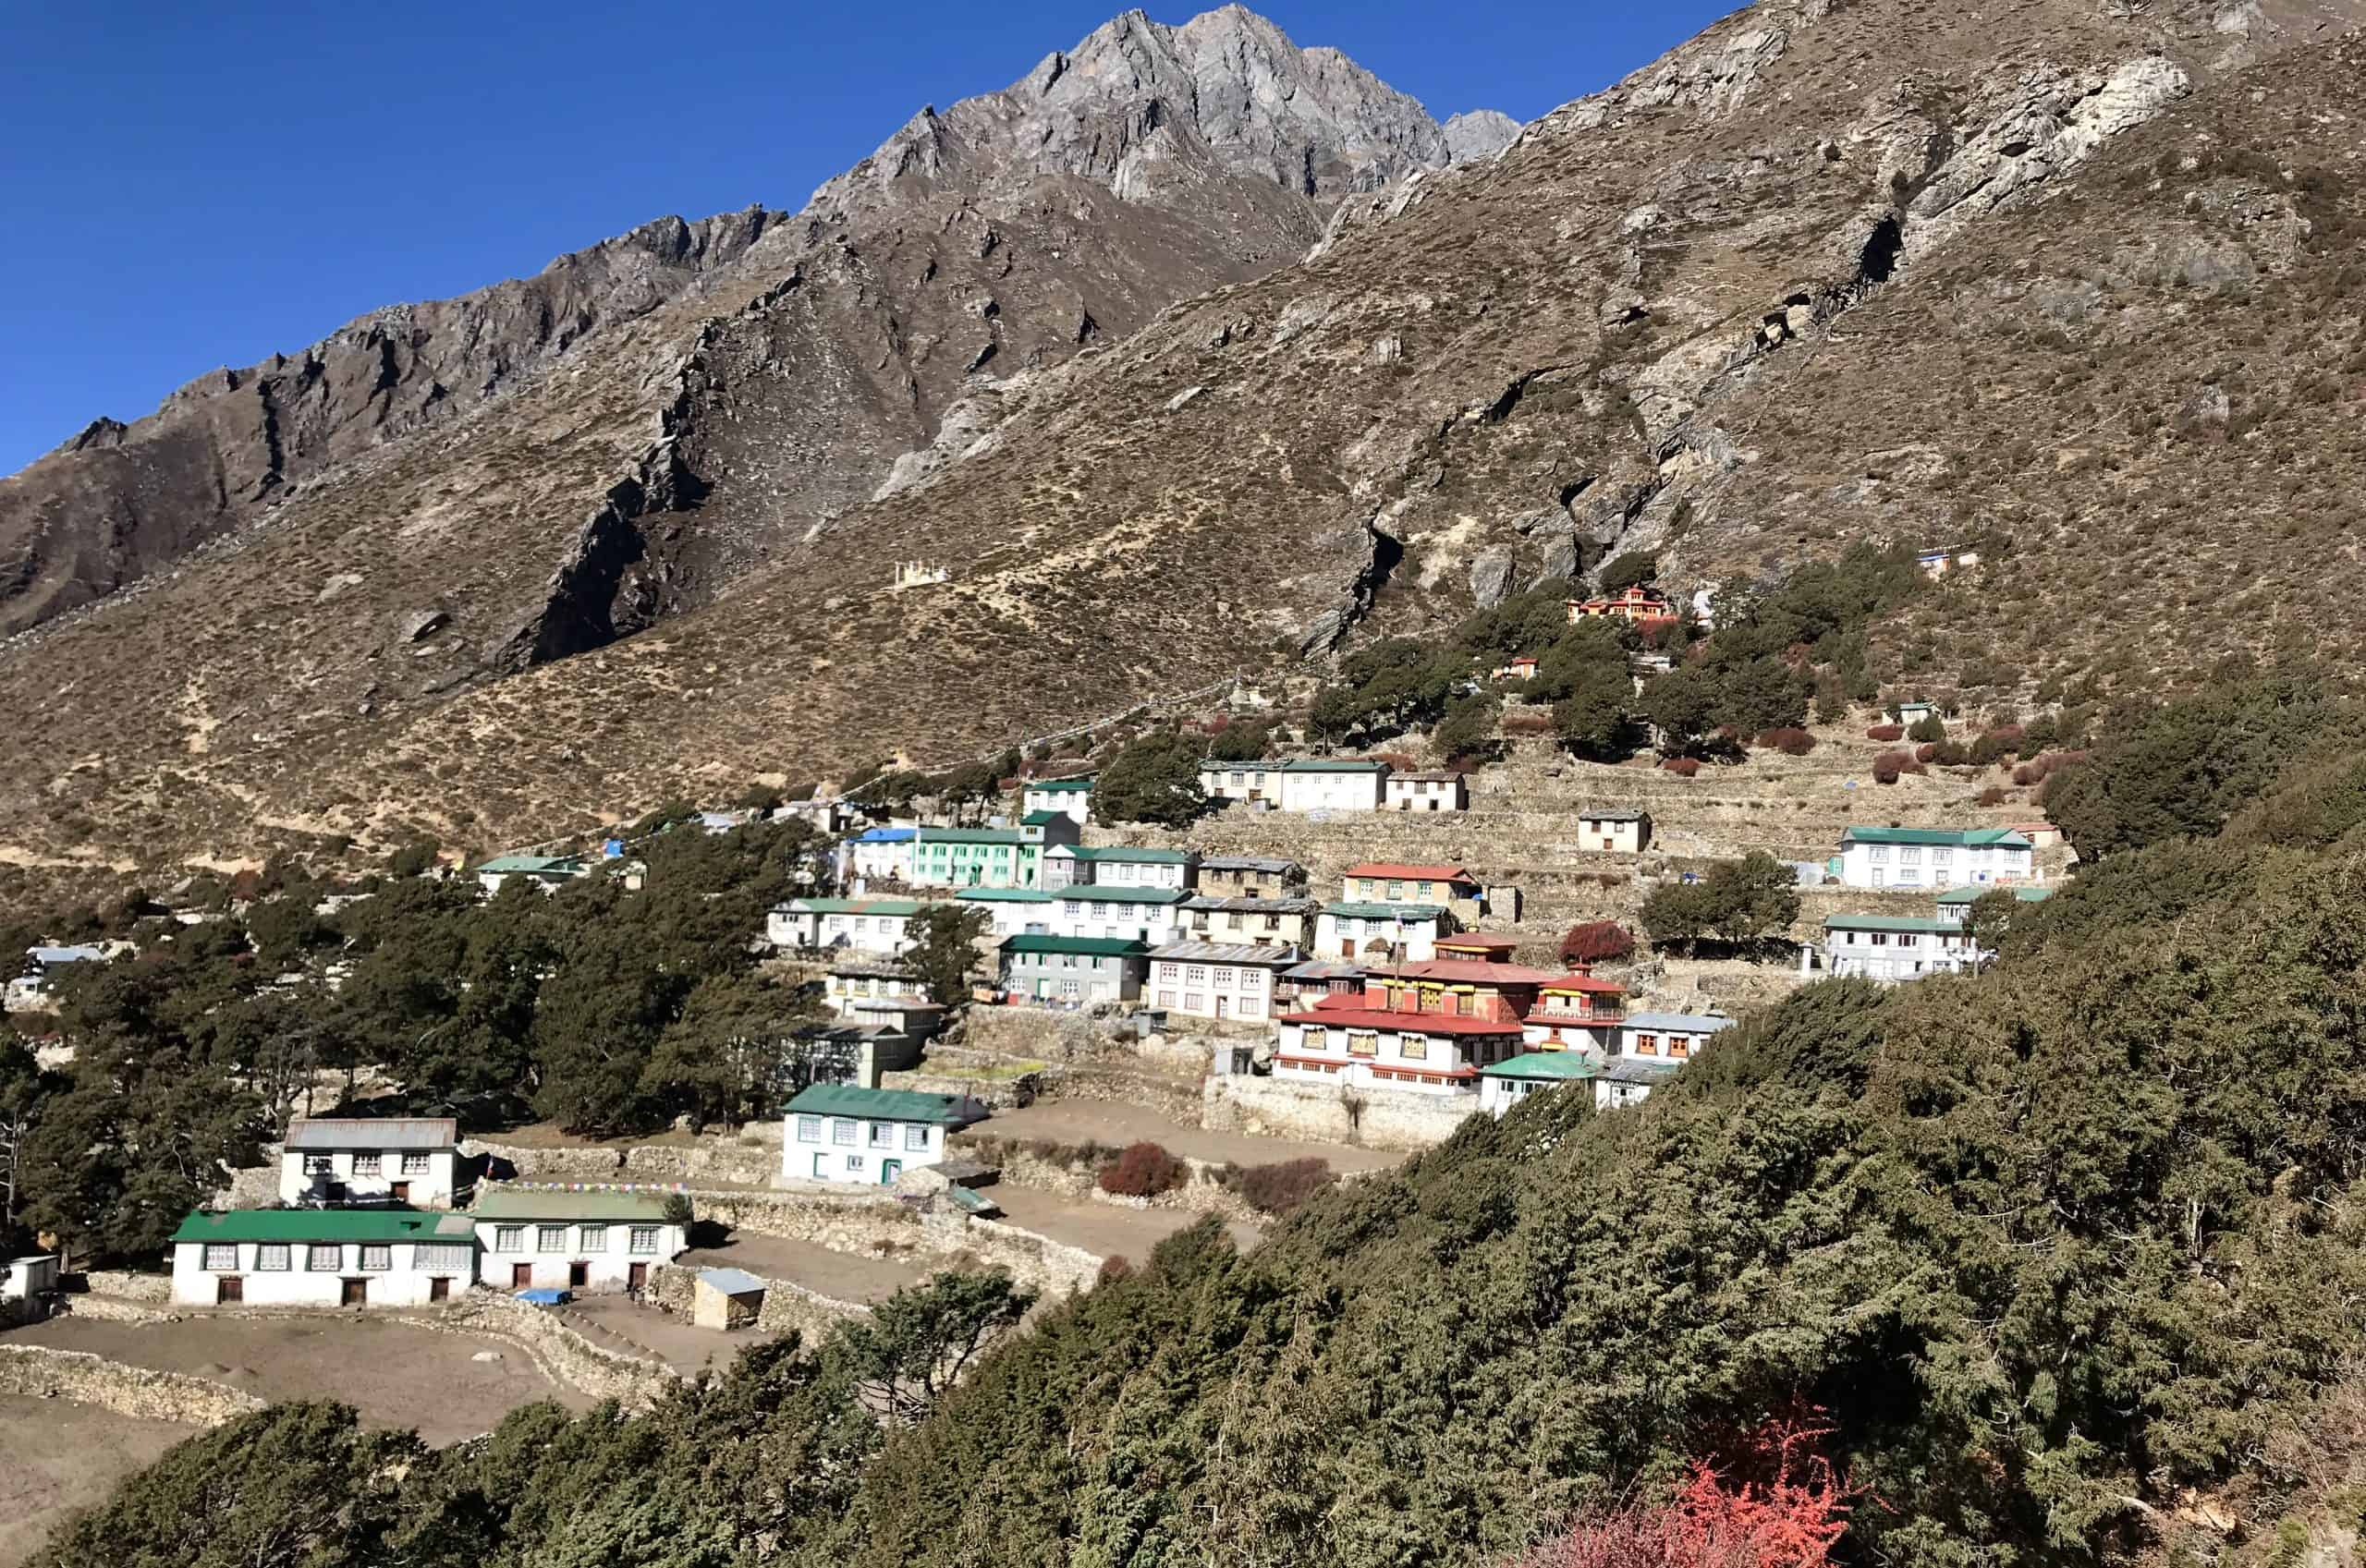 Pangboche village with monastery